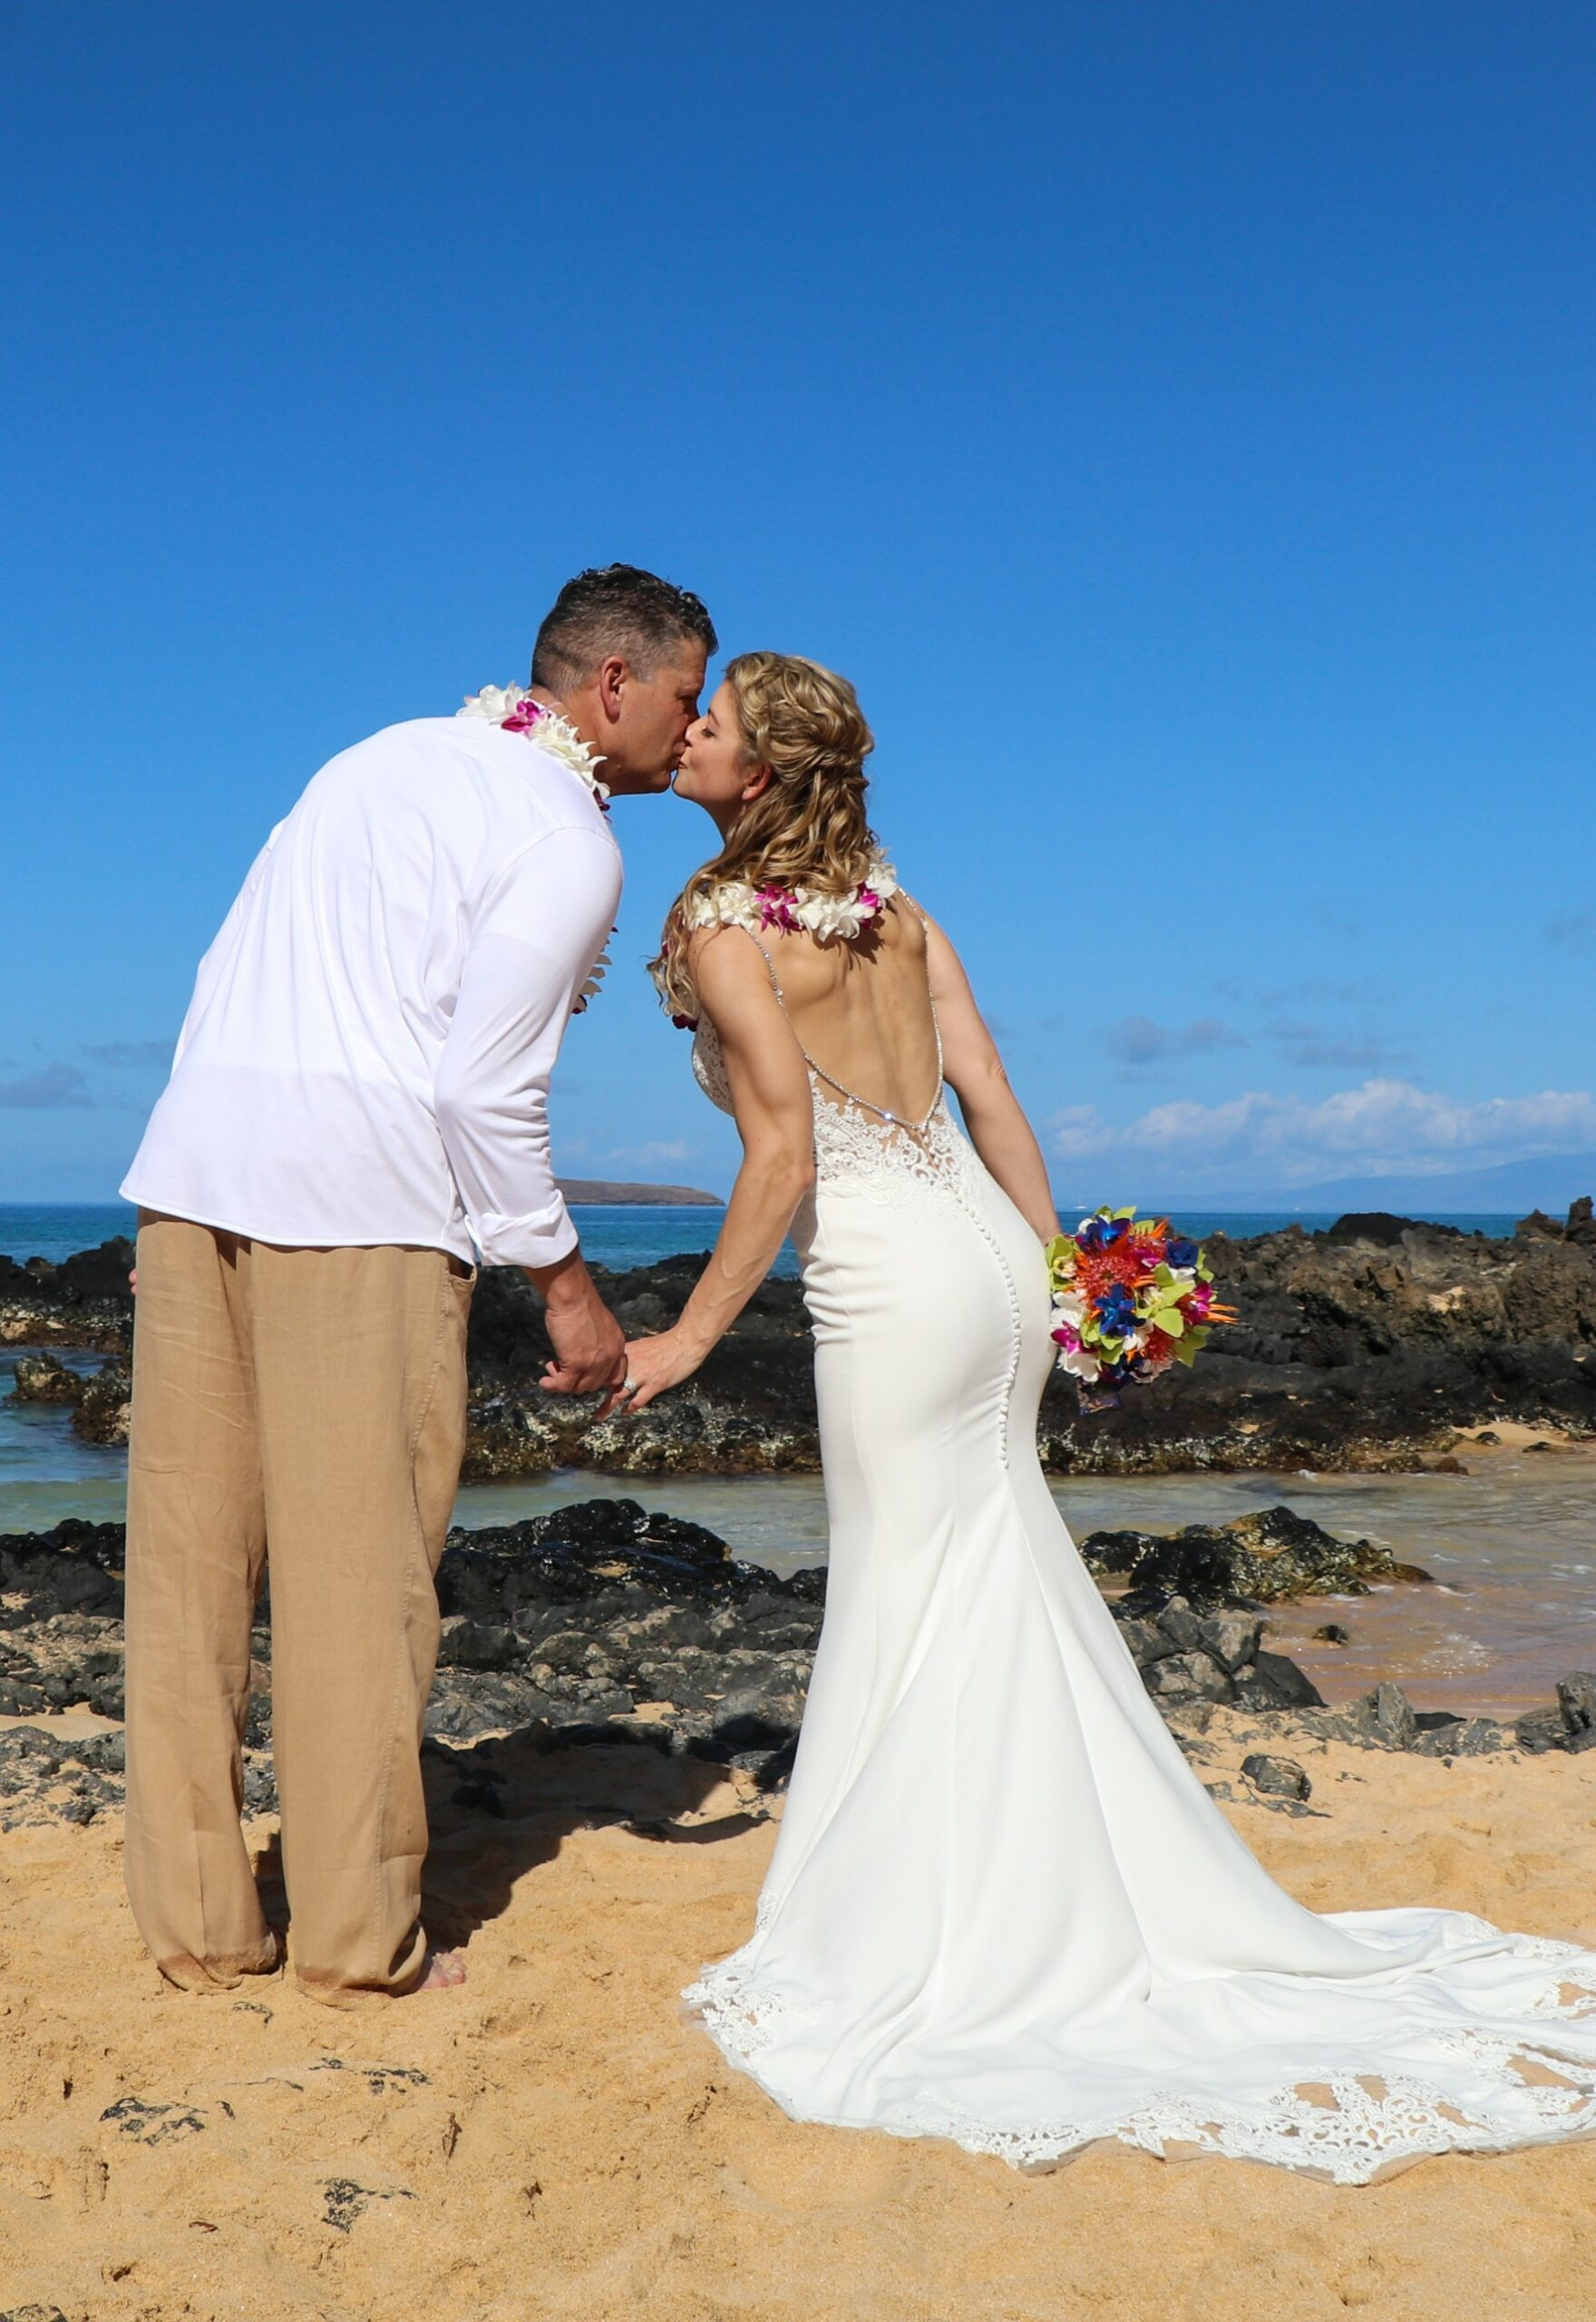 Maui Wedding Photography Lovers Package $1599